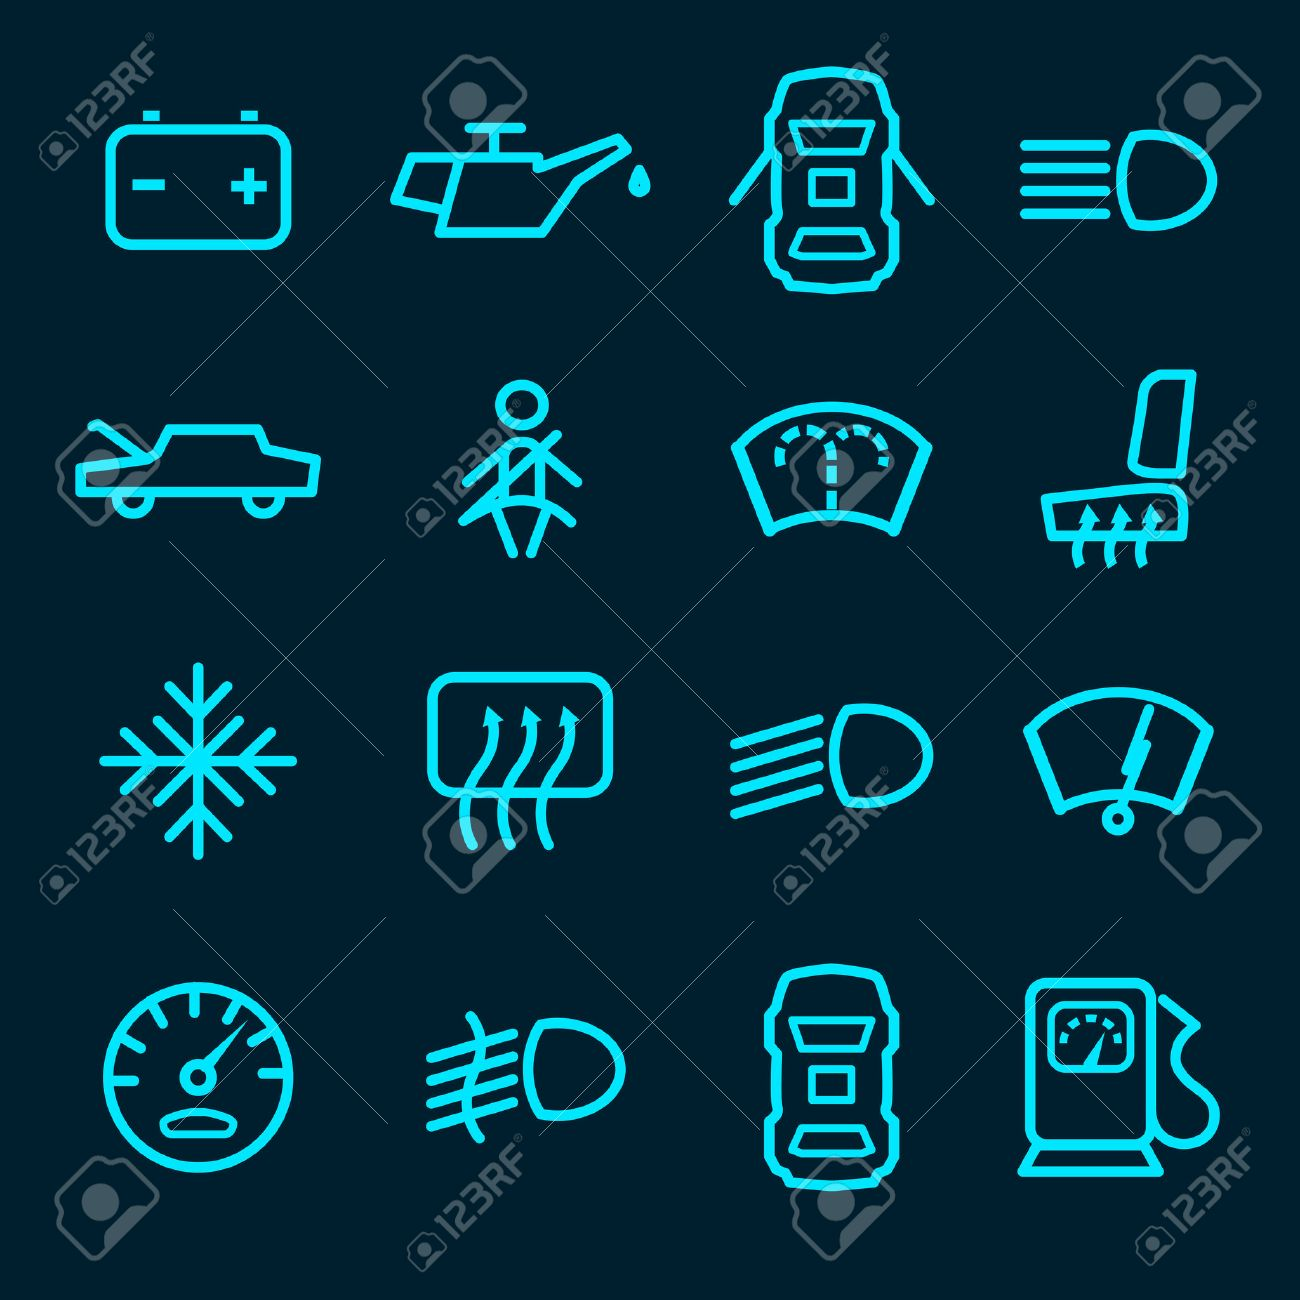 Car Dashboard Icons Set With Warning Lights Fuel Door Seat Symbols - Car image sign of dashboarddashboard warning lights stock images royaltyfree images